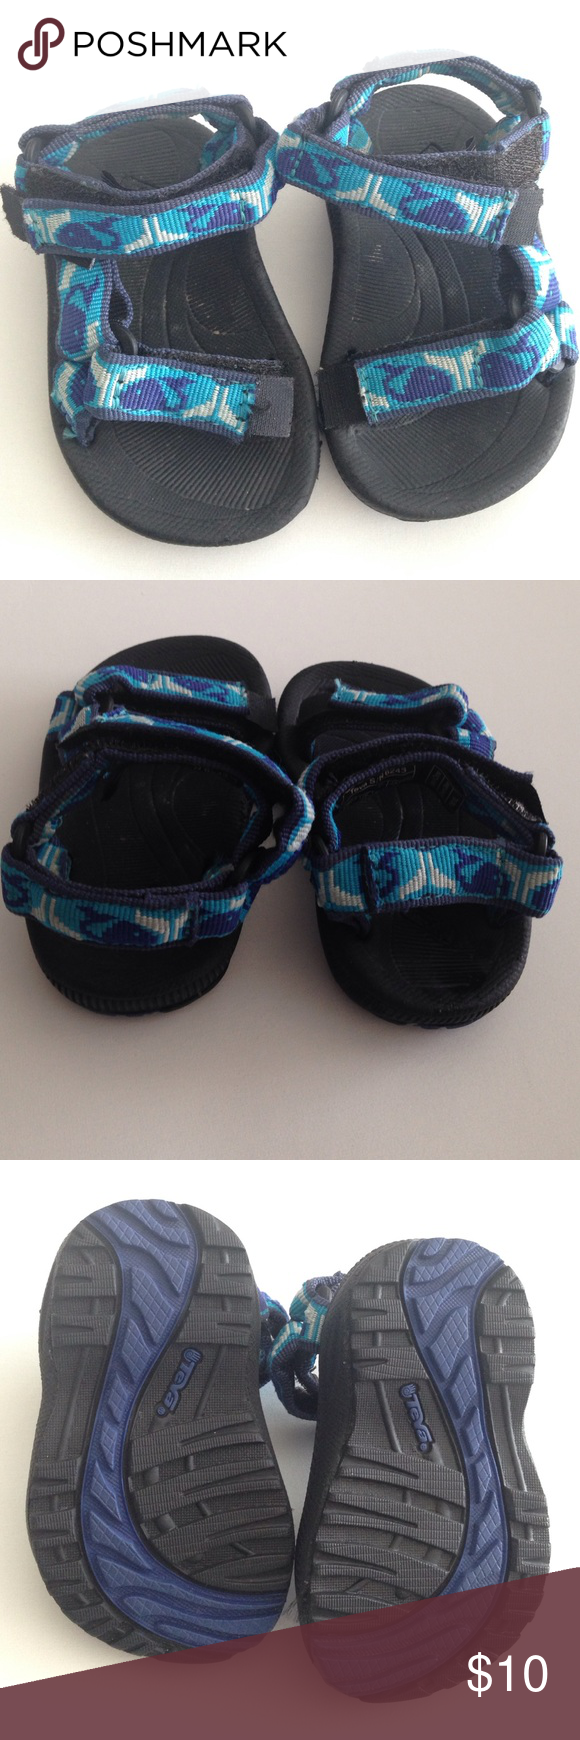 Baby teva sandals Make an offer for these very gently used sandals Teva Shoes Sandals & Flip Flops